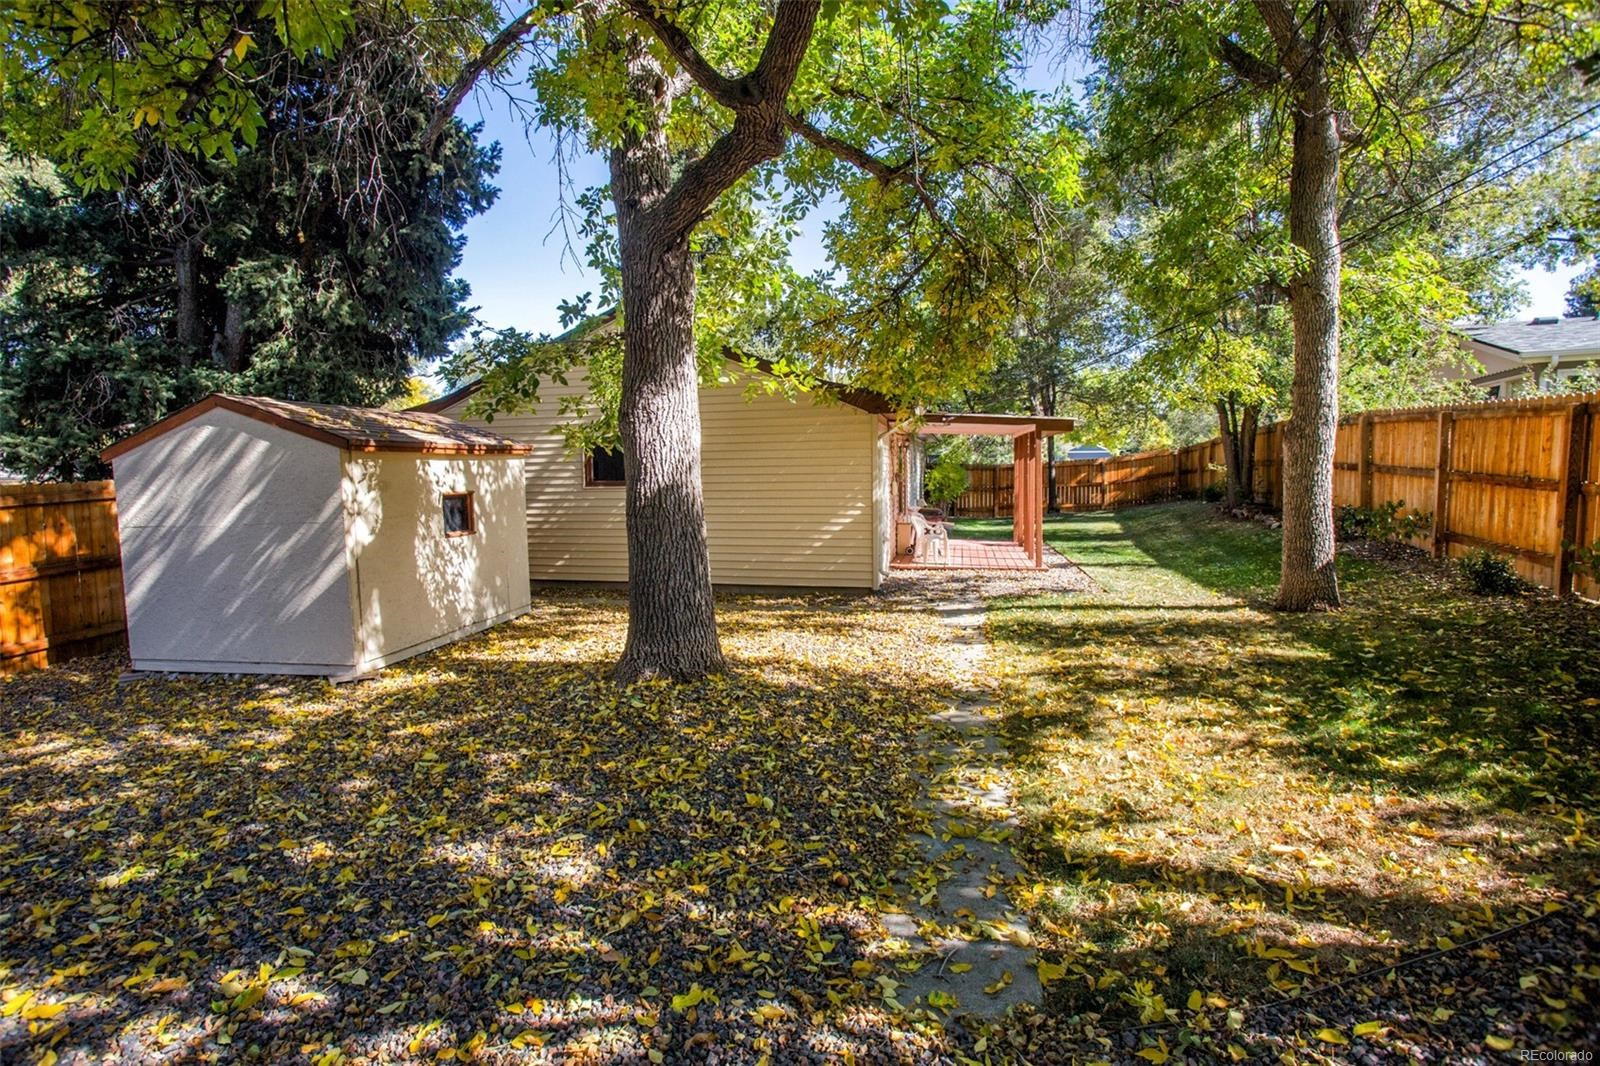 MLS# 1591889 - 26 - 10120 W 8th Place, Lakewood, CO 80215